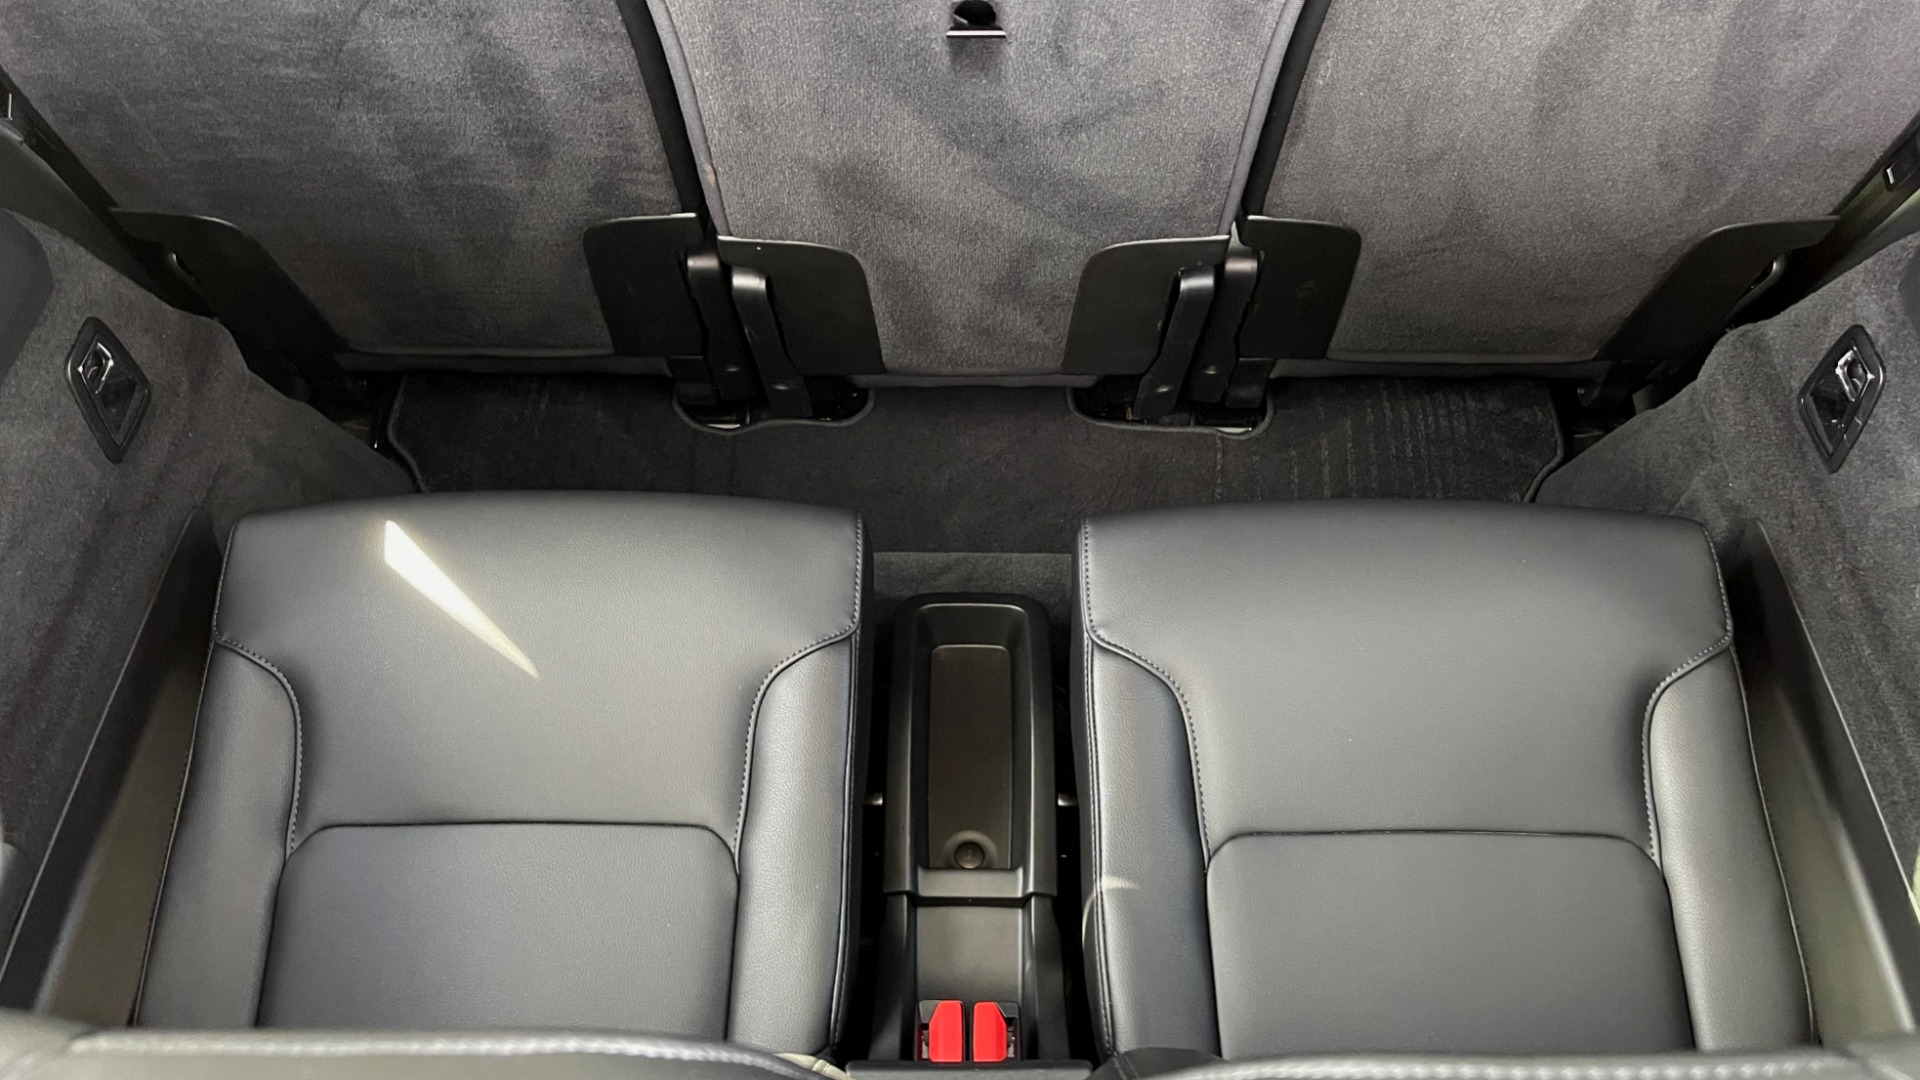 Used 2018 Volvo XC90 T5 AWD MOMENTUM PLUS / NAV / SUNROOF / 3-ROW / REARVIEW for sale $40,295 at Formula Imports in Charlotte NC 28227 23